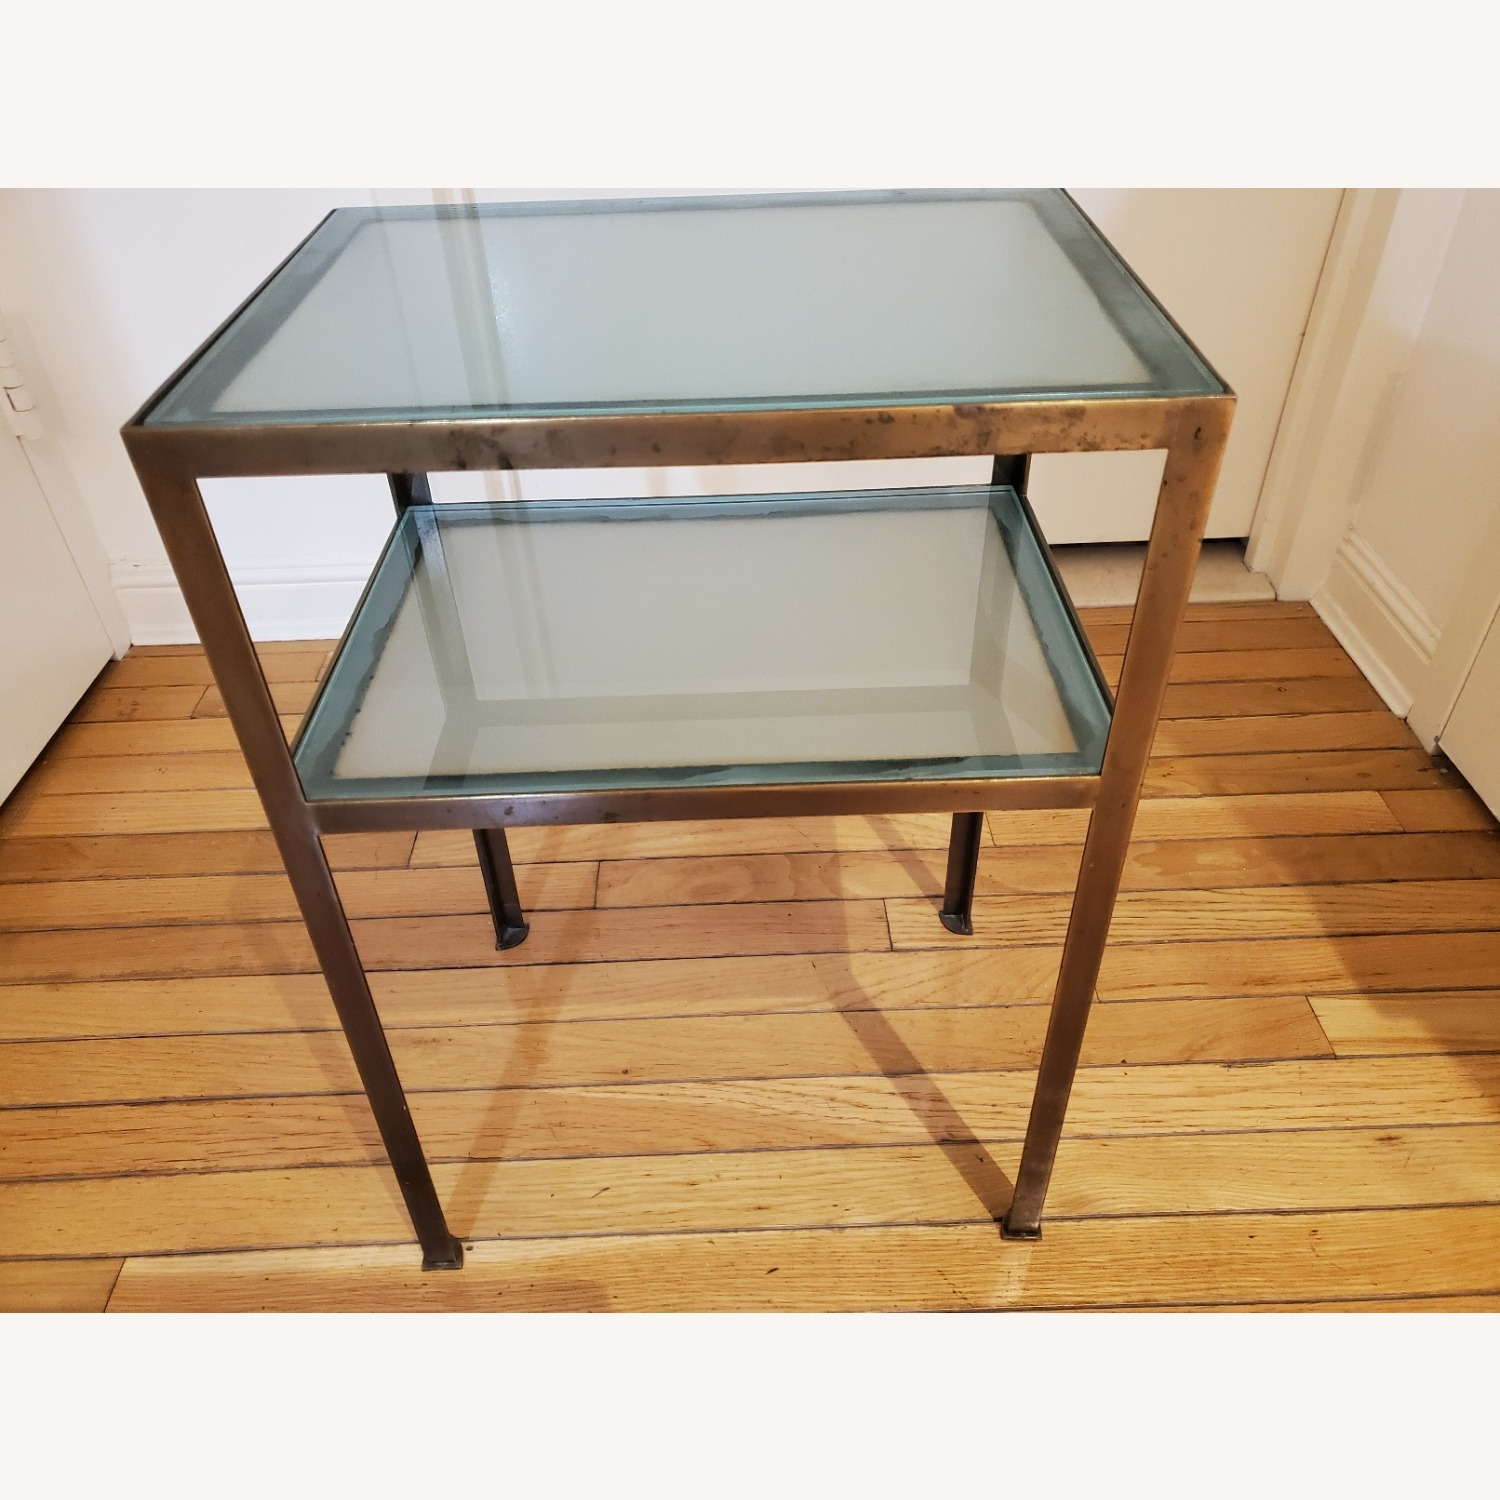 Small two-tiered Glass and Brass End Table - image-3